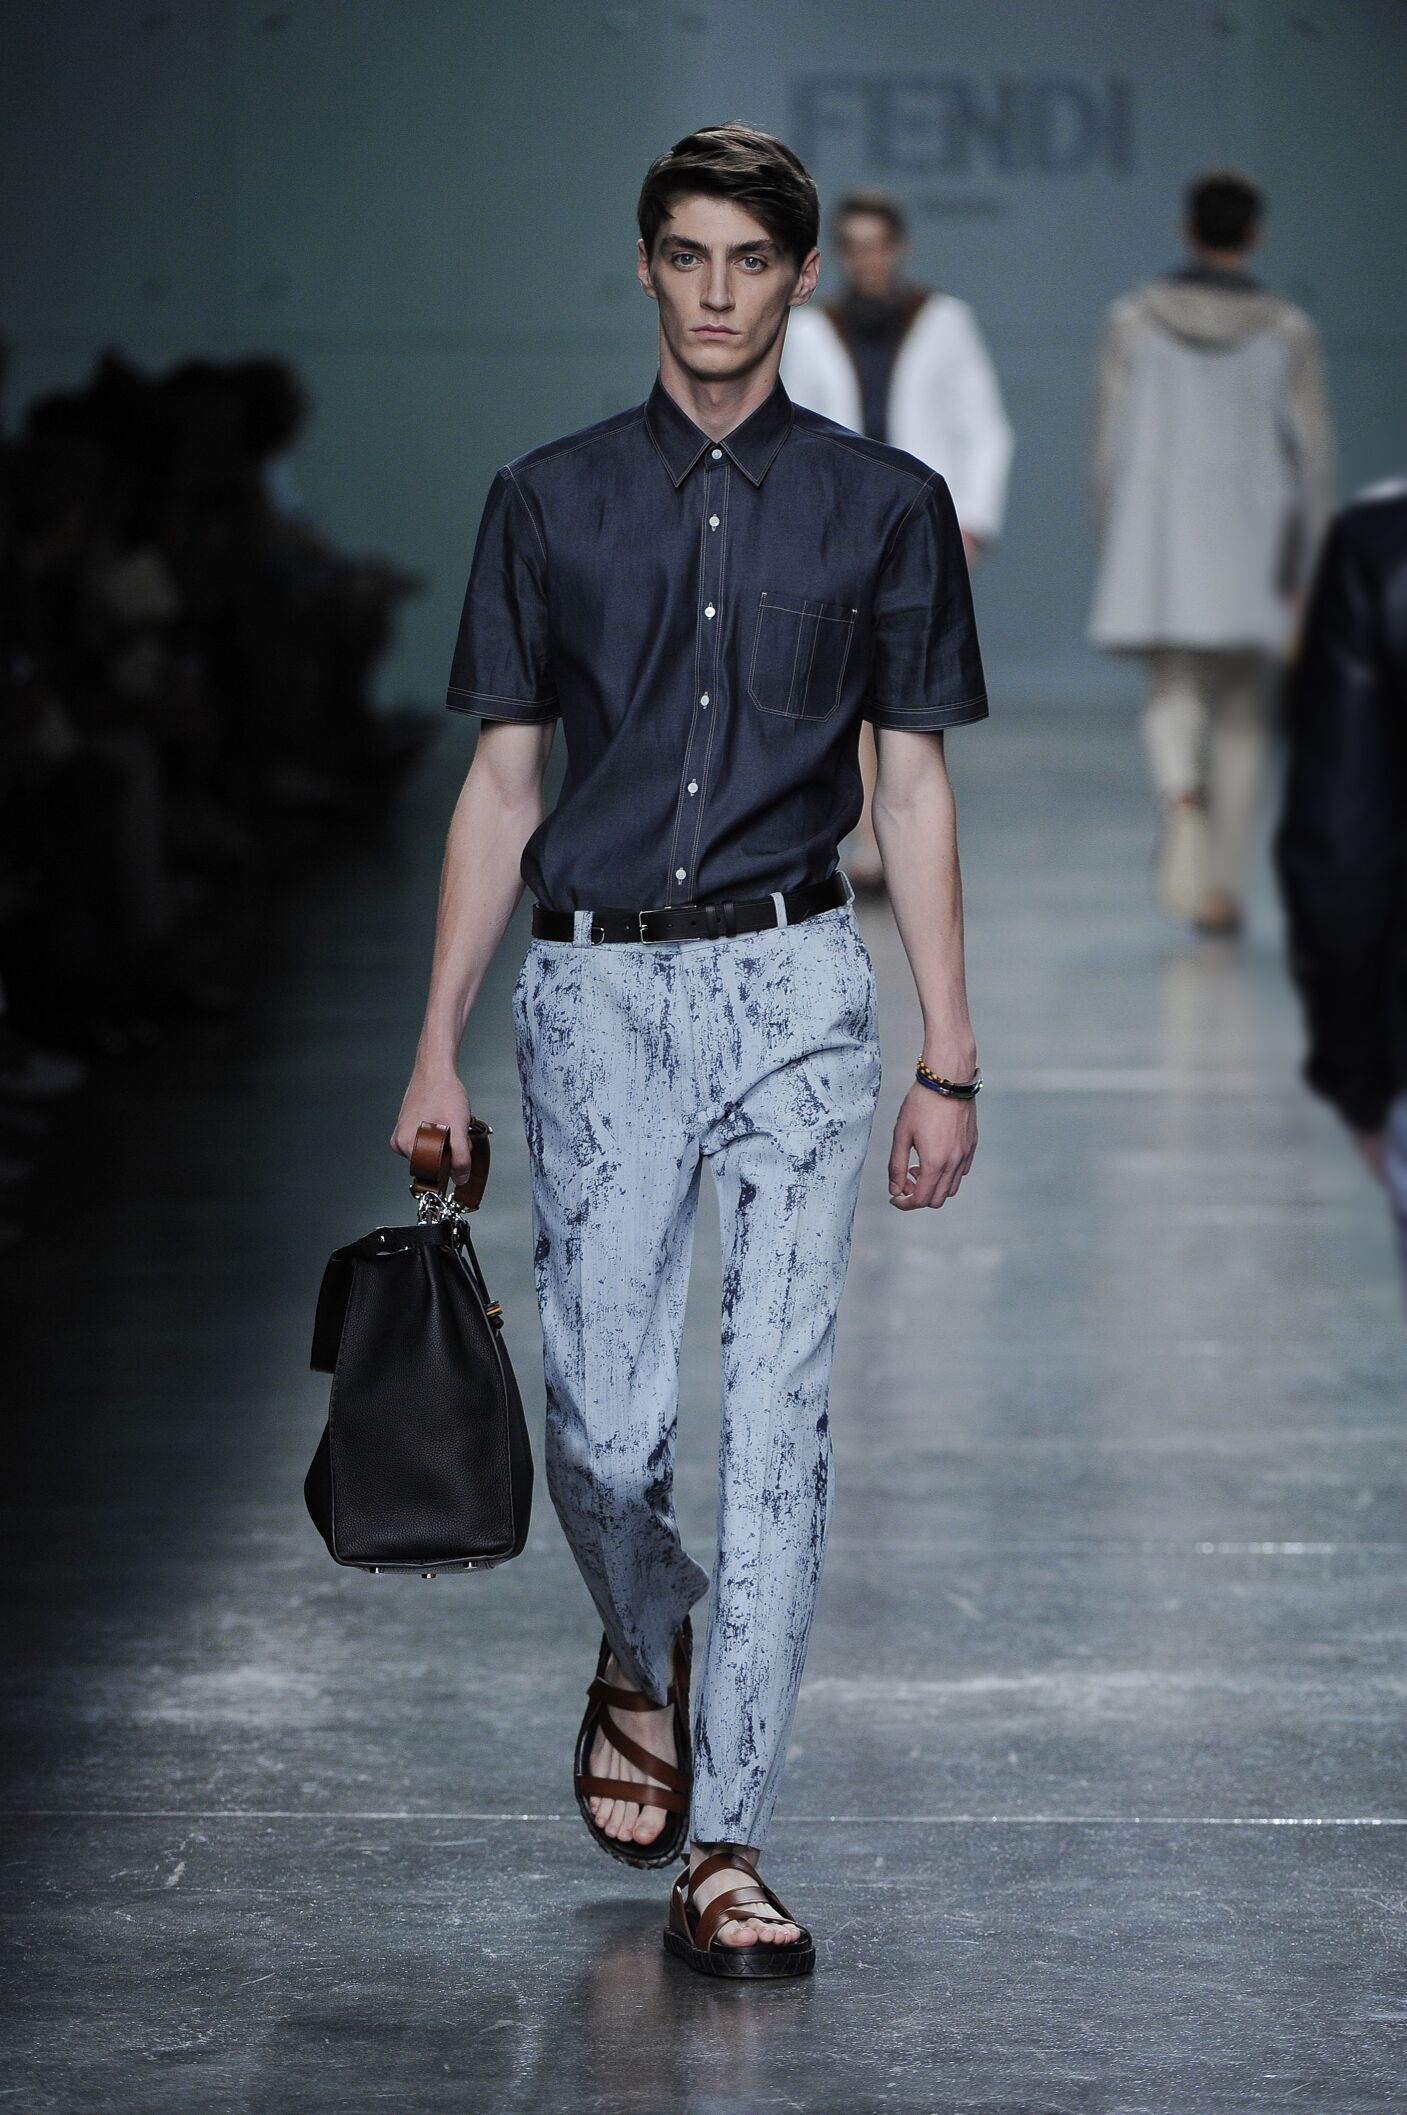 Catwalk Fendi Man Fashion Show Summer 2015